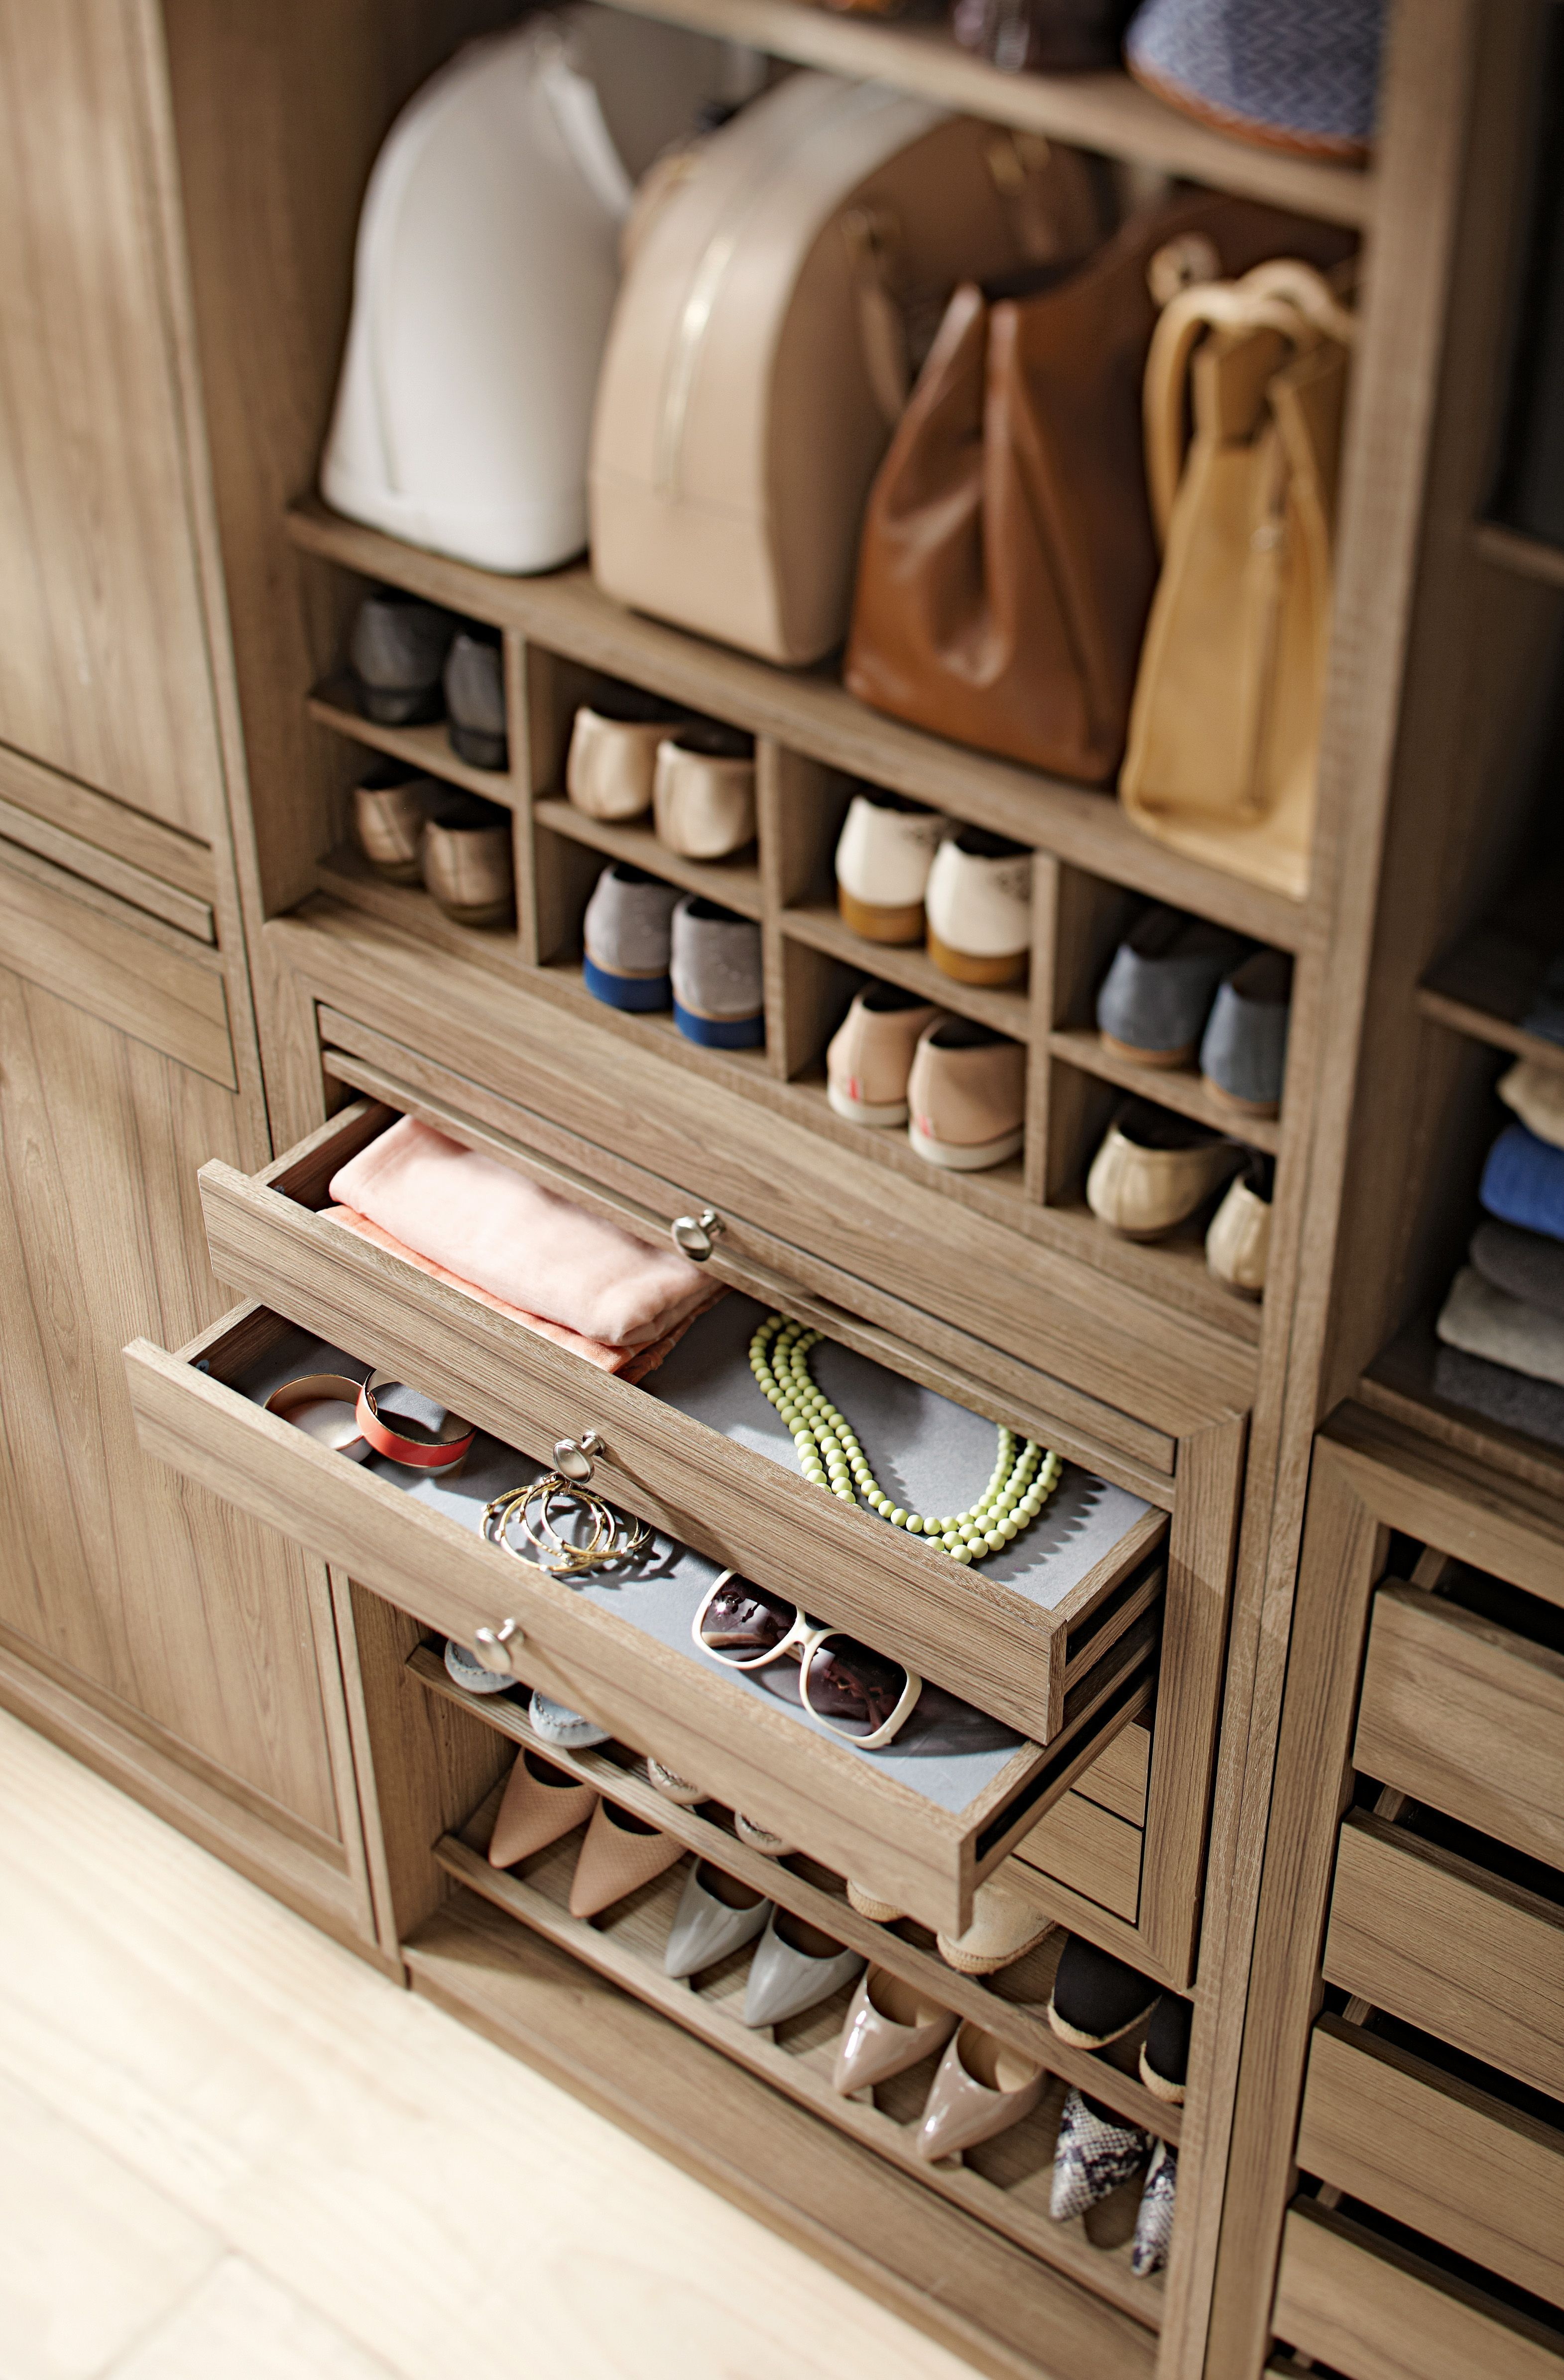 20 Pretty Closet Systems According to Architects [Full Image